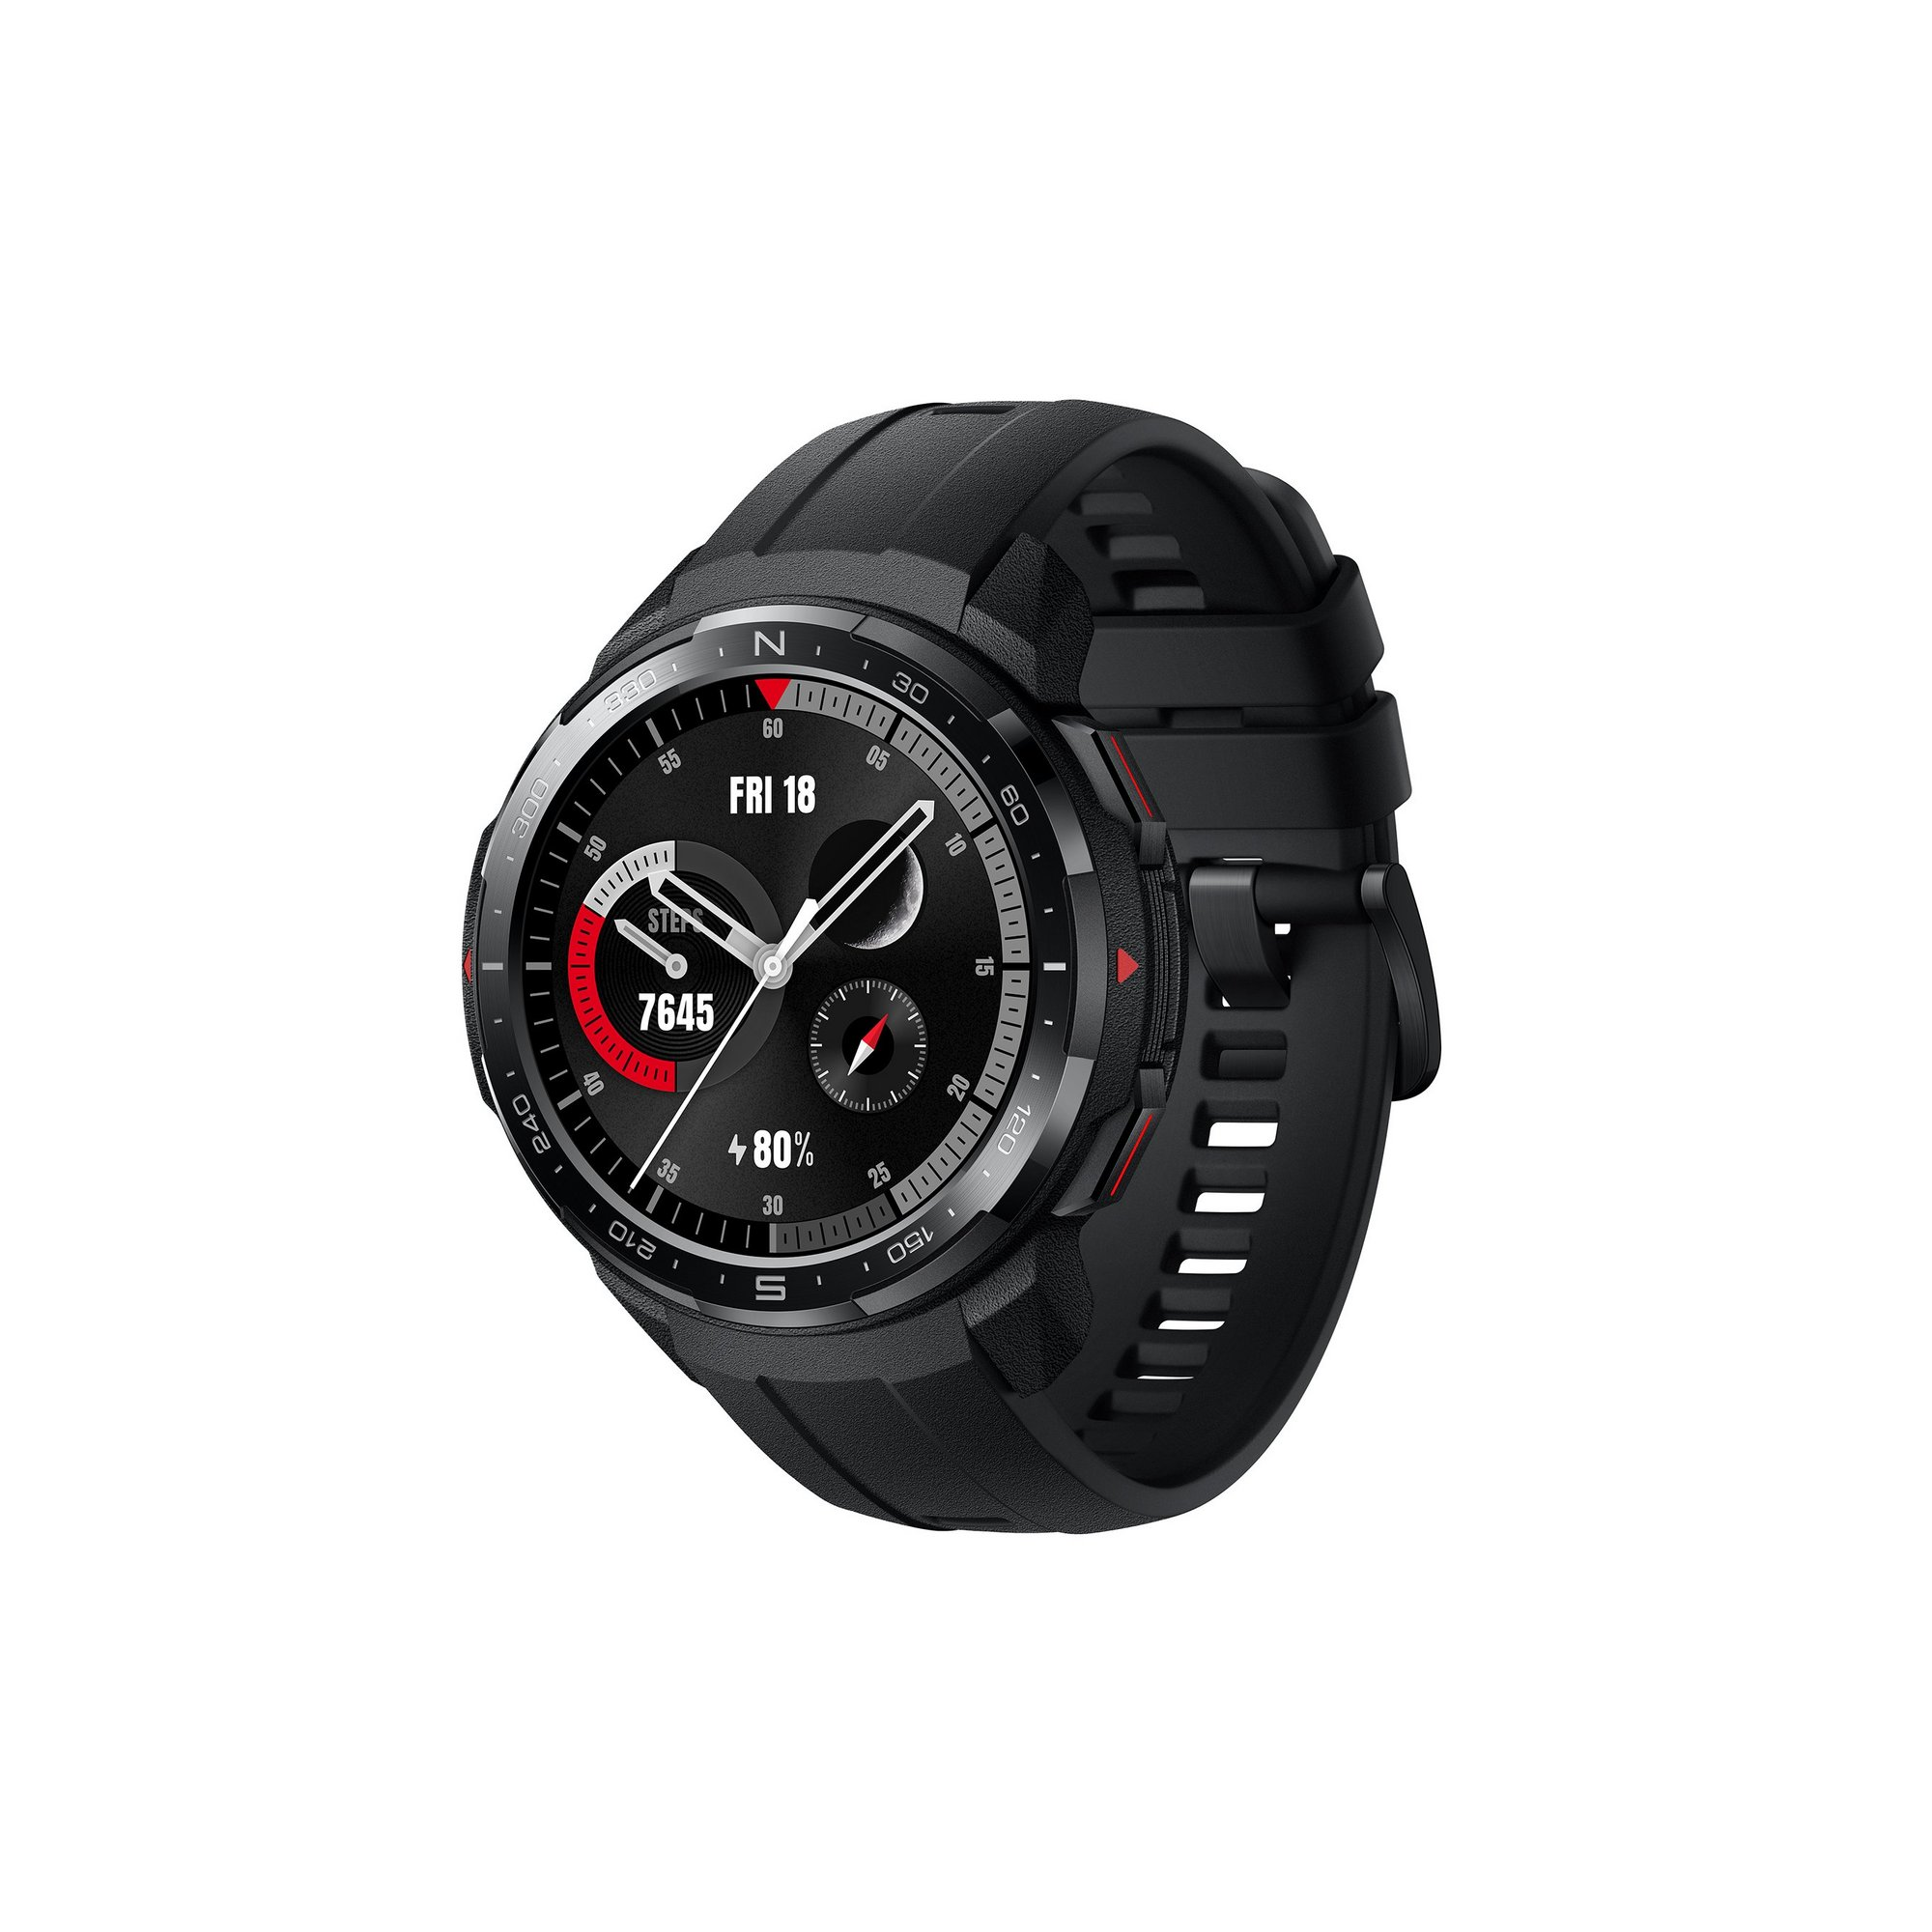 Image of Honor Watch GS Pro